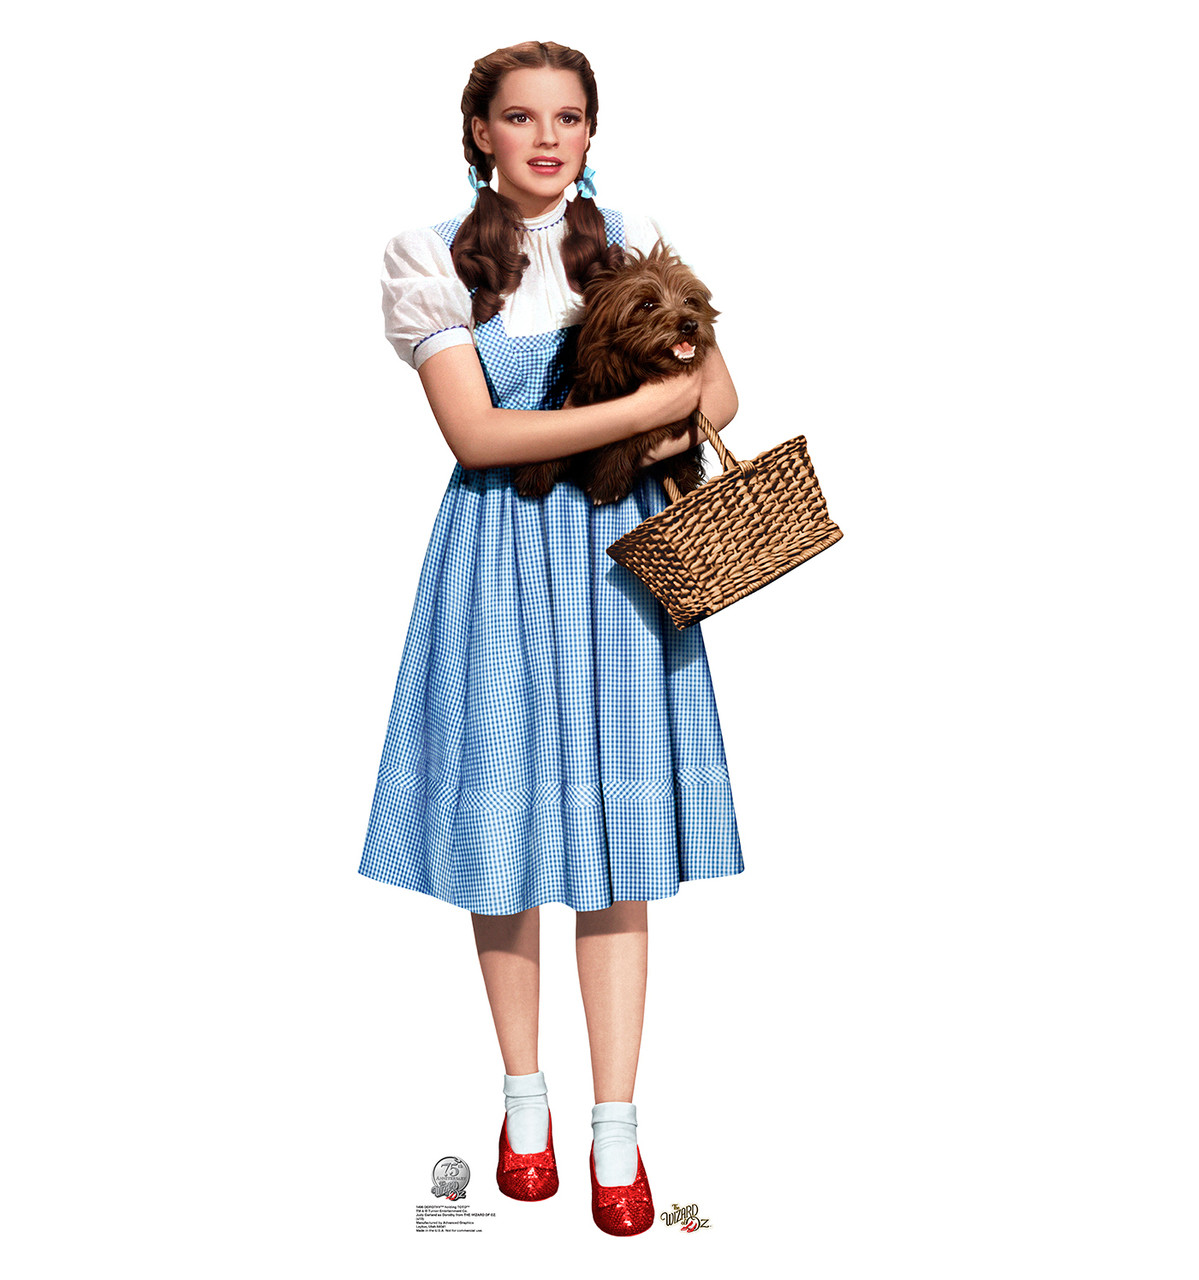 Life size dorothy and toto wizard of oz cardboard standup dorothy and toto wizard of oz cardboard cutout thecheapjerseys Choice Image